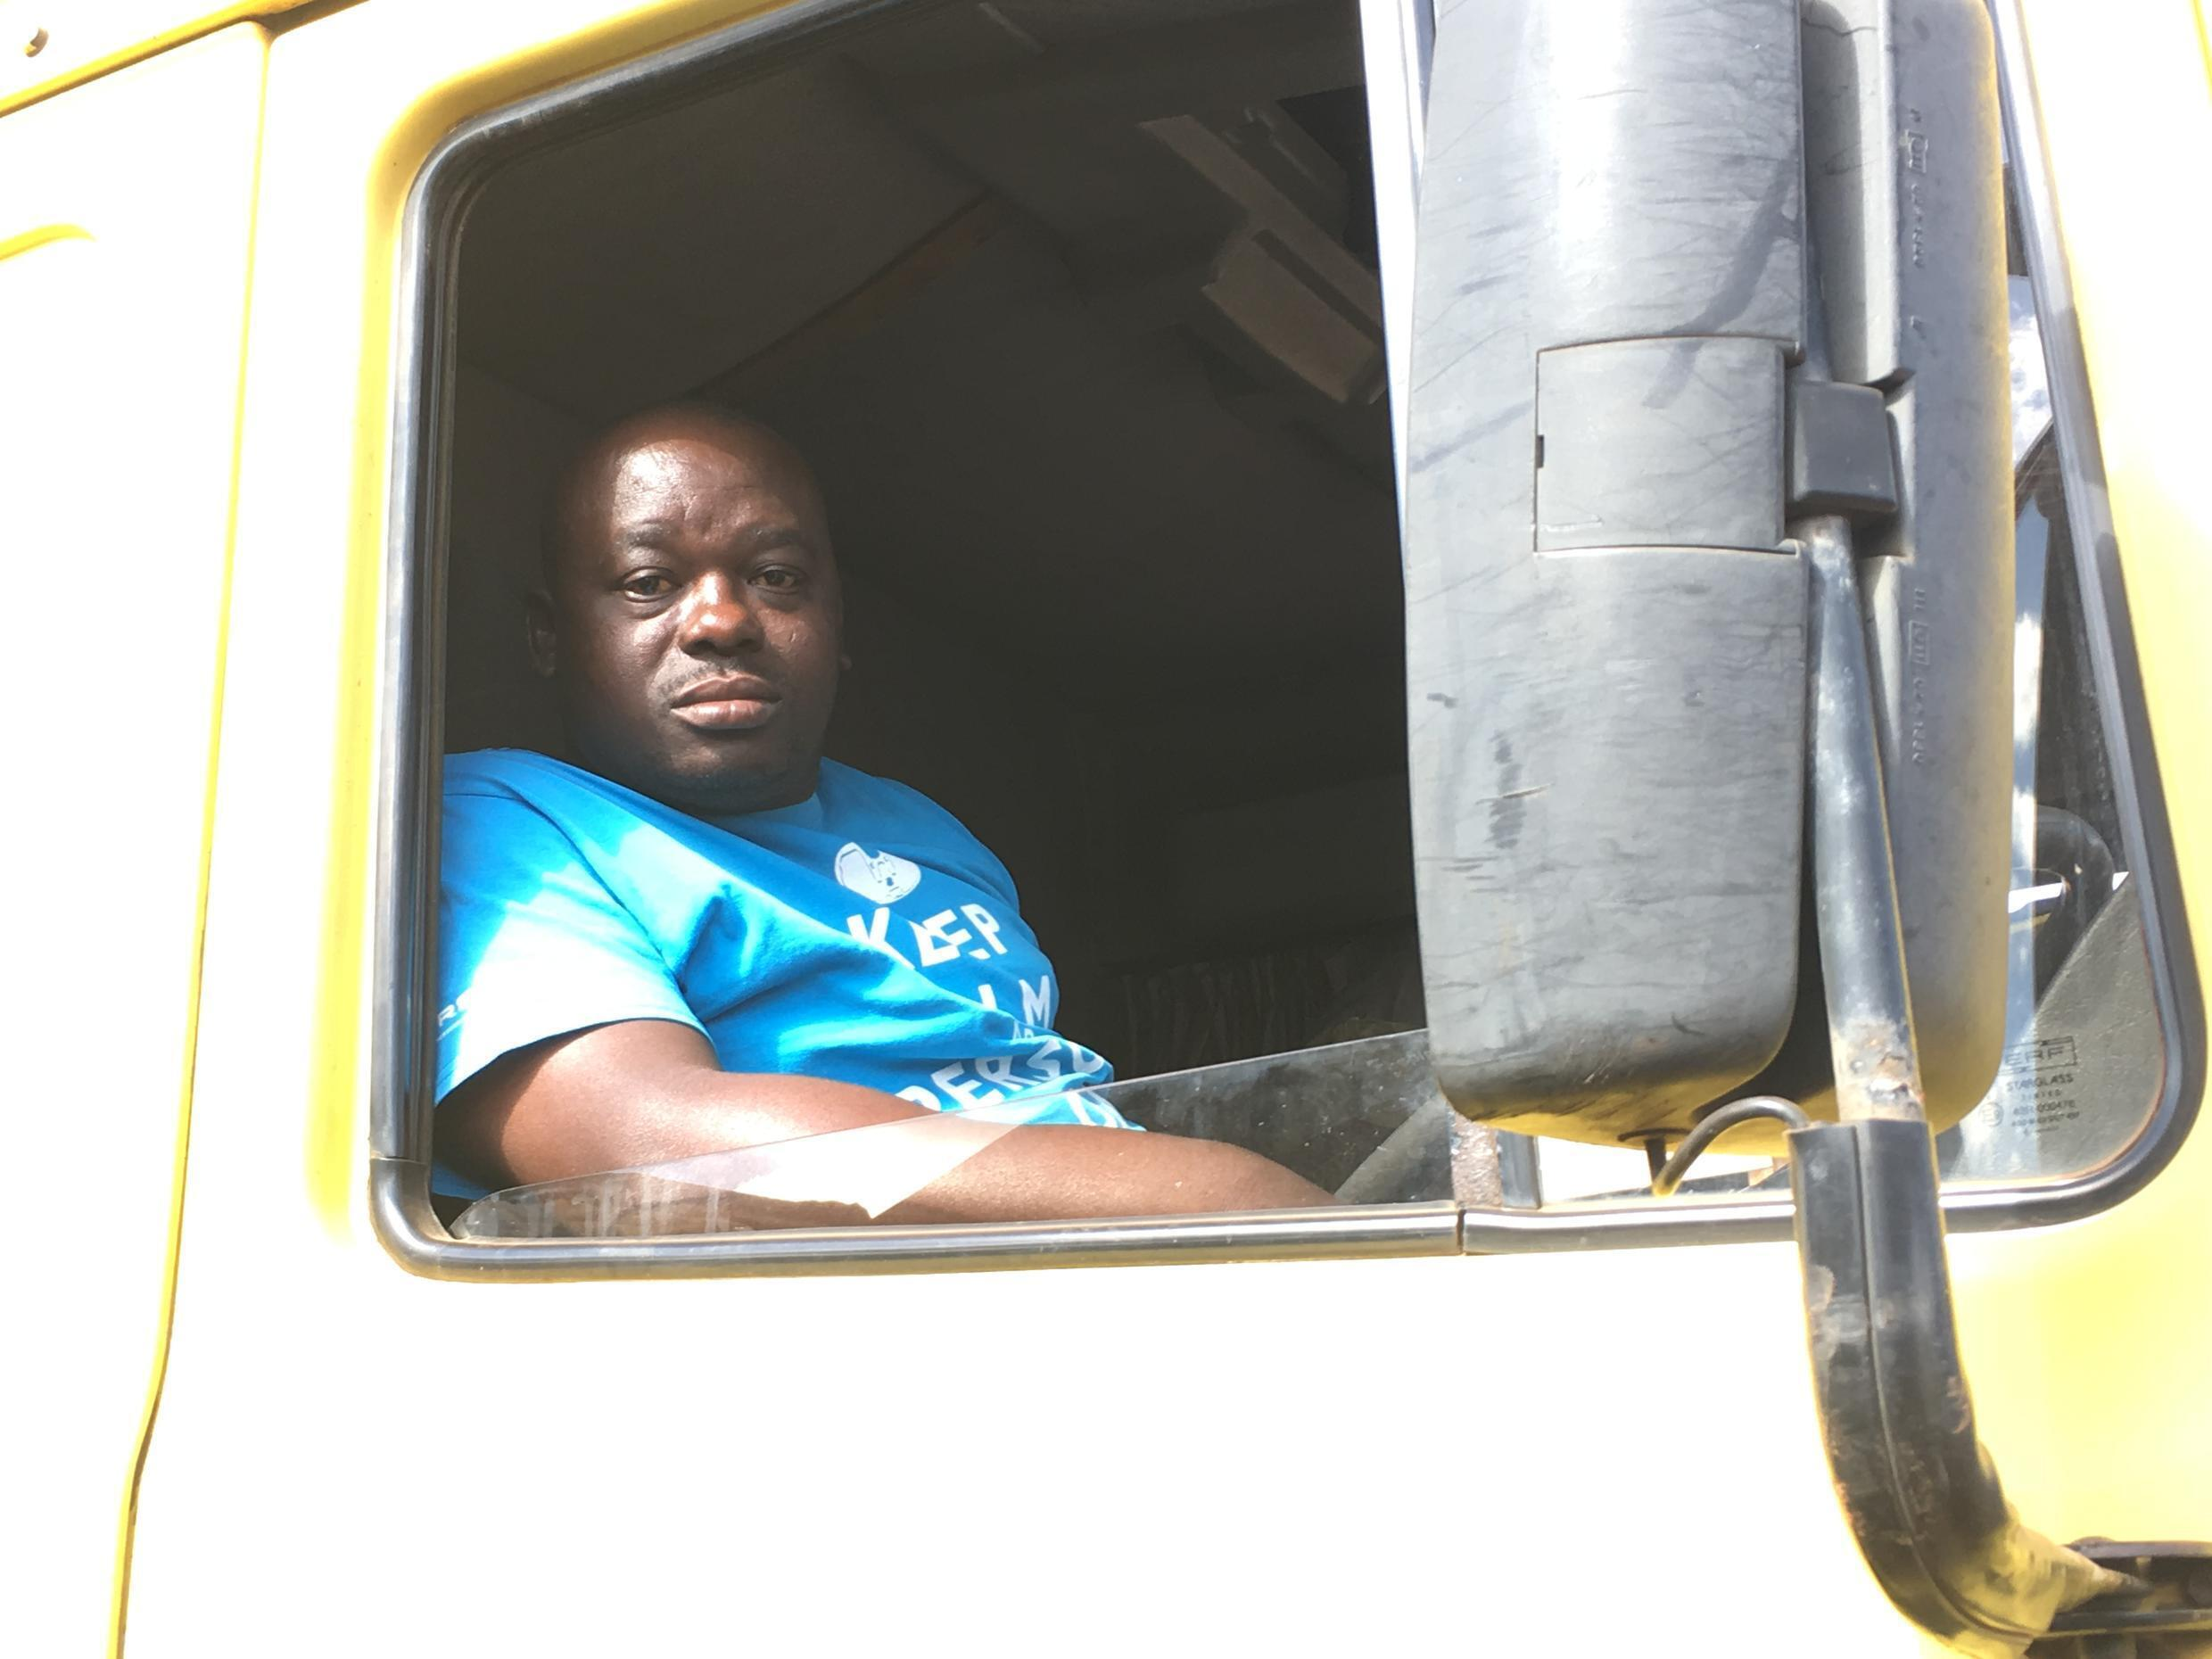 Zimbwaean trucker Joseph Cheza is voting for change, but if that doesn't happen he'll go back to South Africa